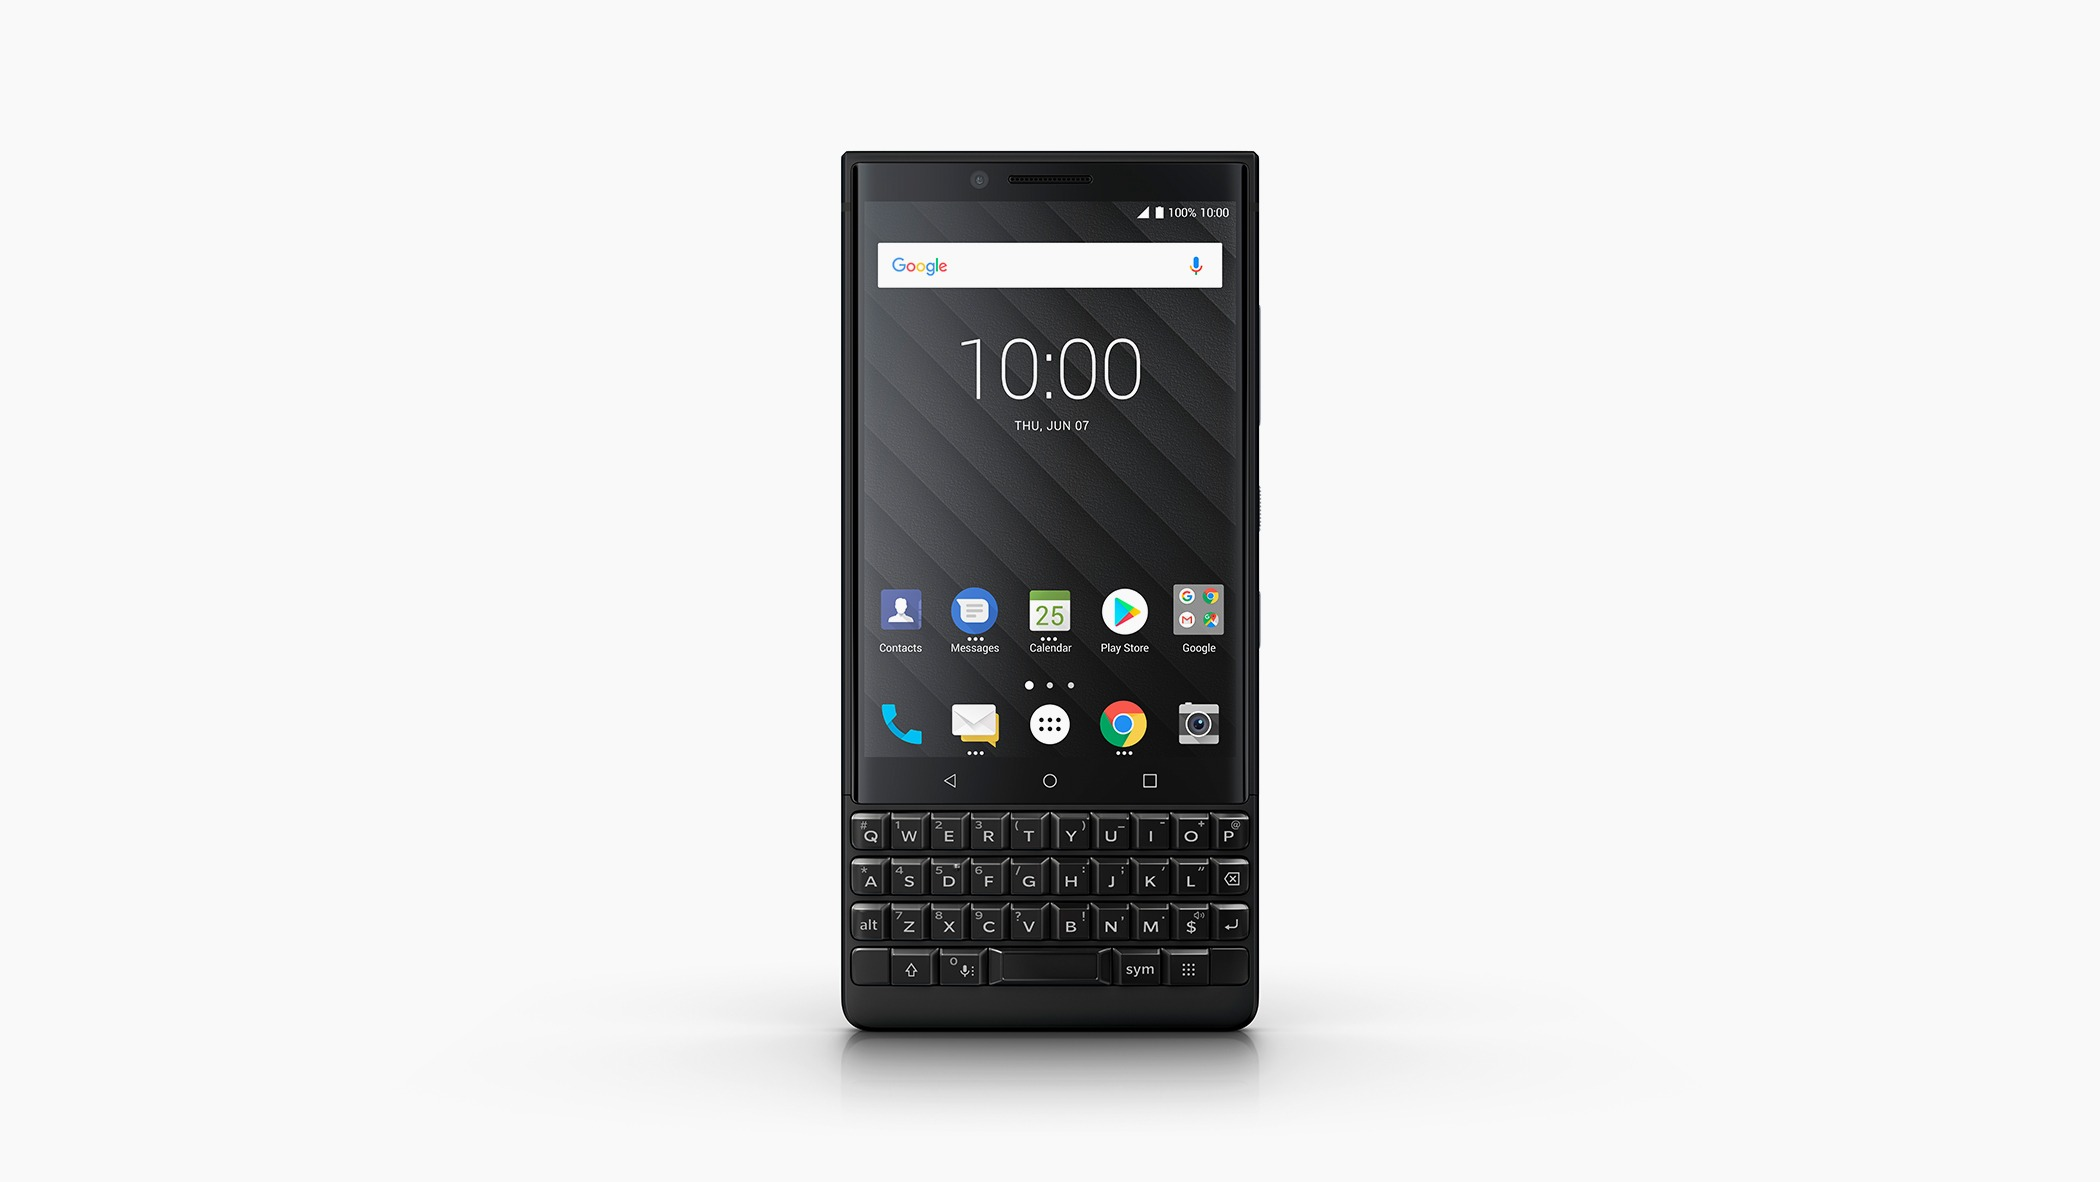 spy phone without physical access blackberry